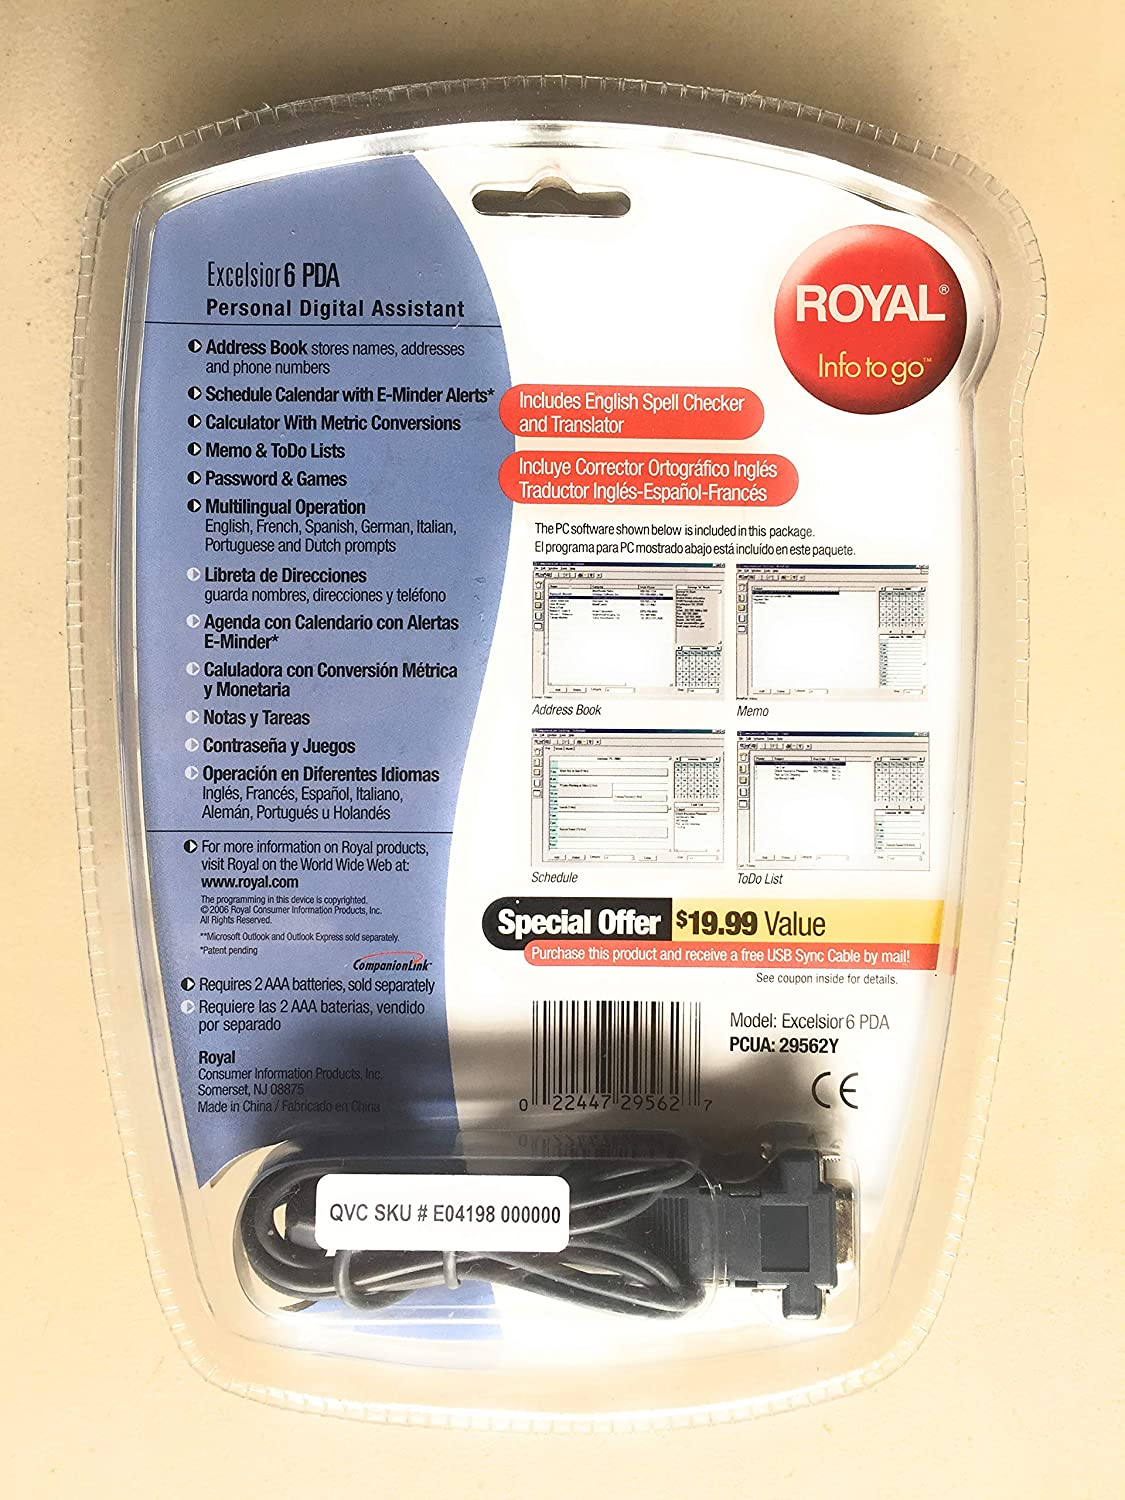 Amazon.com: ROYAL INFO TO GO EXCELSIOR 6 PDA: Electronics